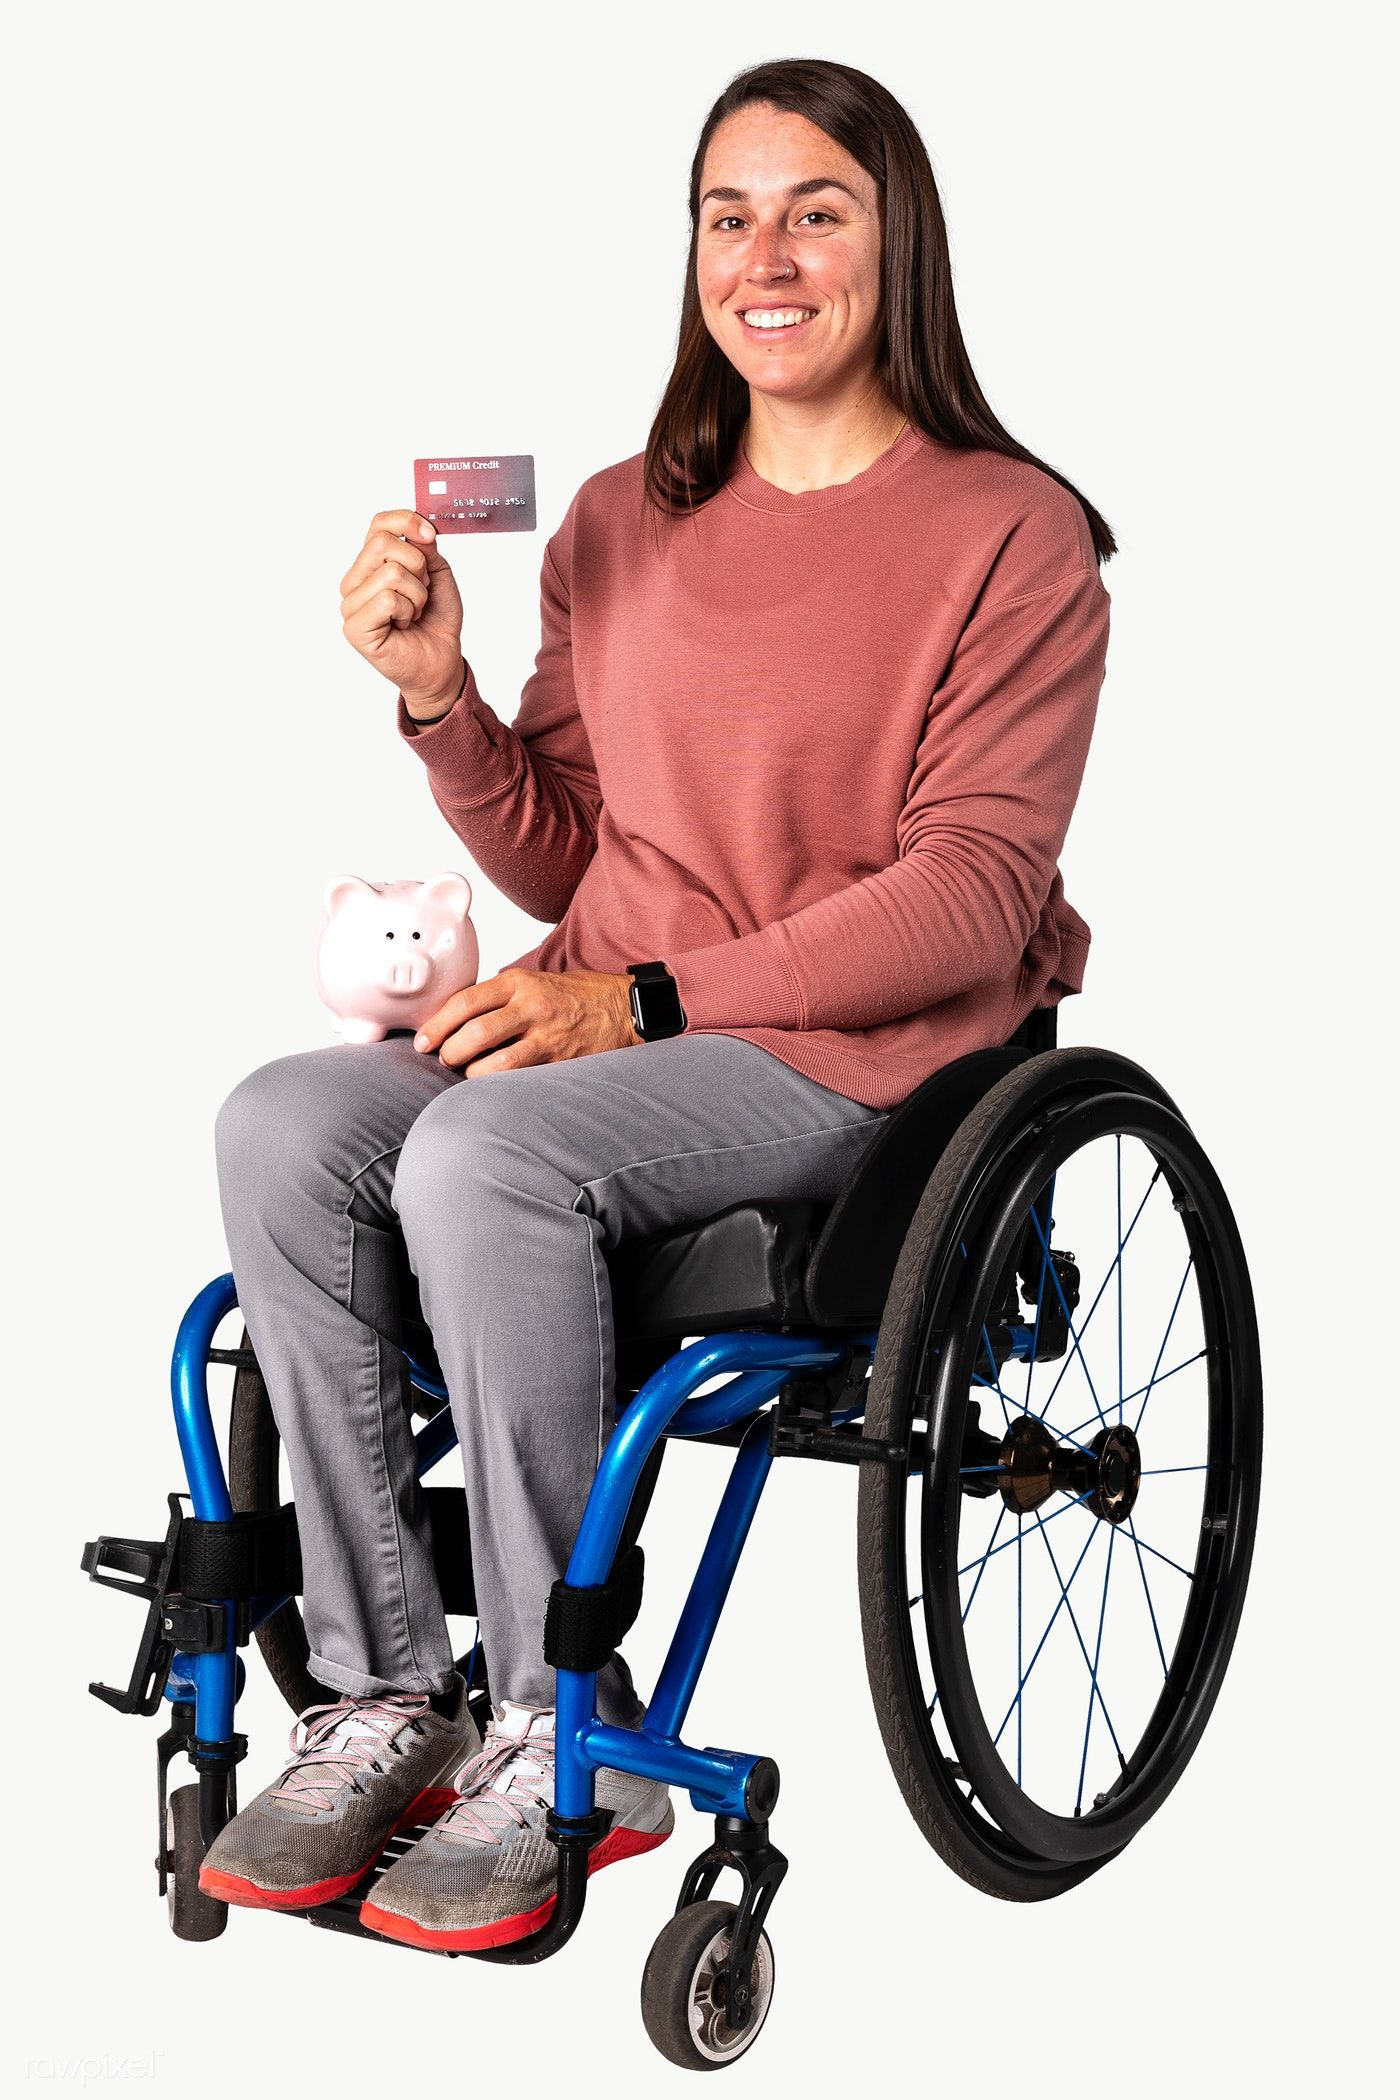 Download Premium Png Of Cool Woman On A Wheelchair Showing A Premium Png Woman Drawing Fit Couples